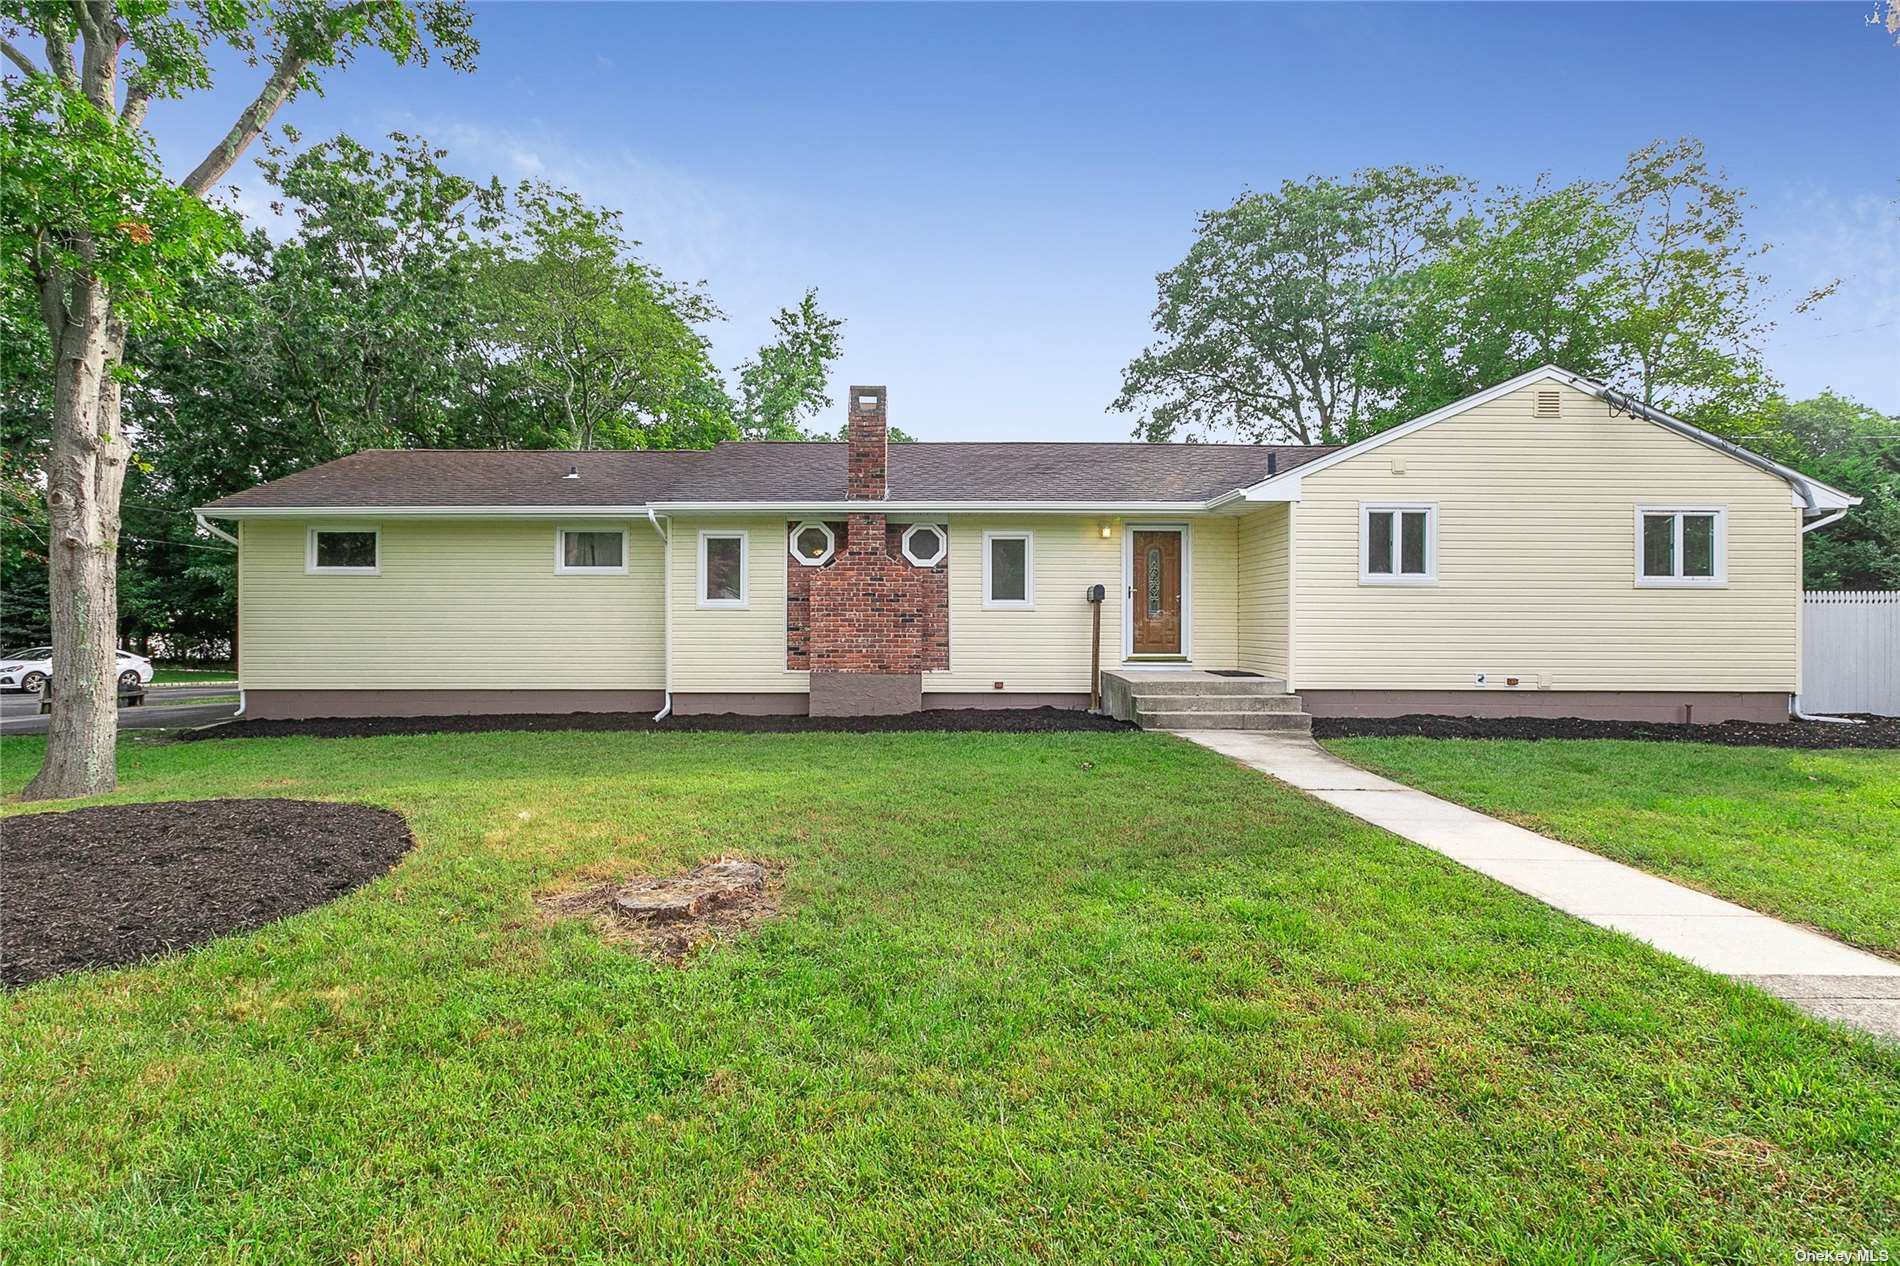 259 N Prospect Avenue, Patchogue, NY 11772 - MLS#: 3342925